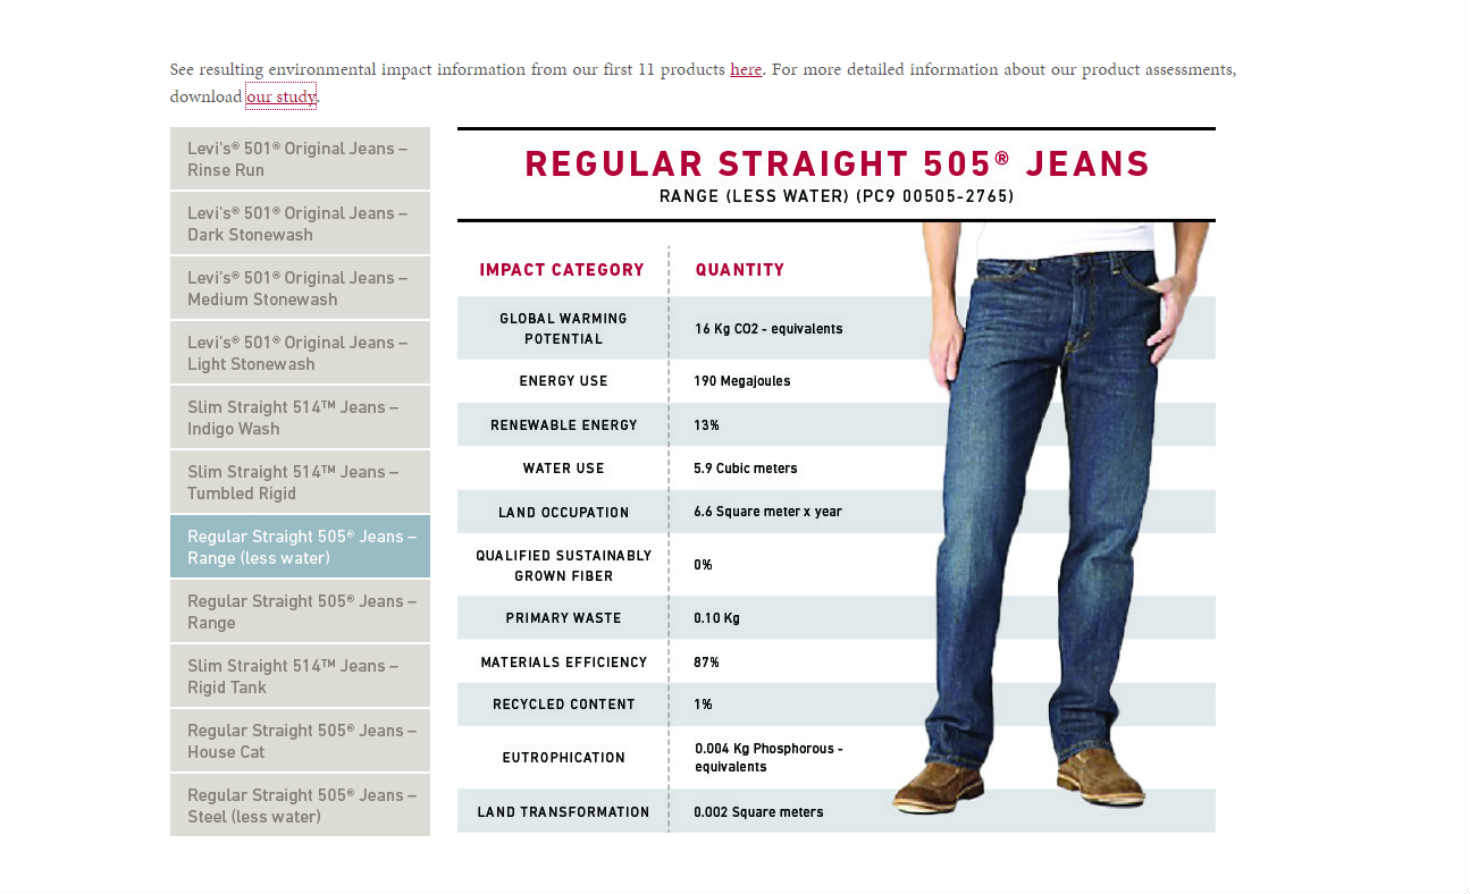 Levi's sustainability impact by design